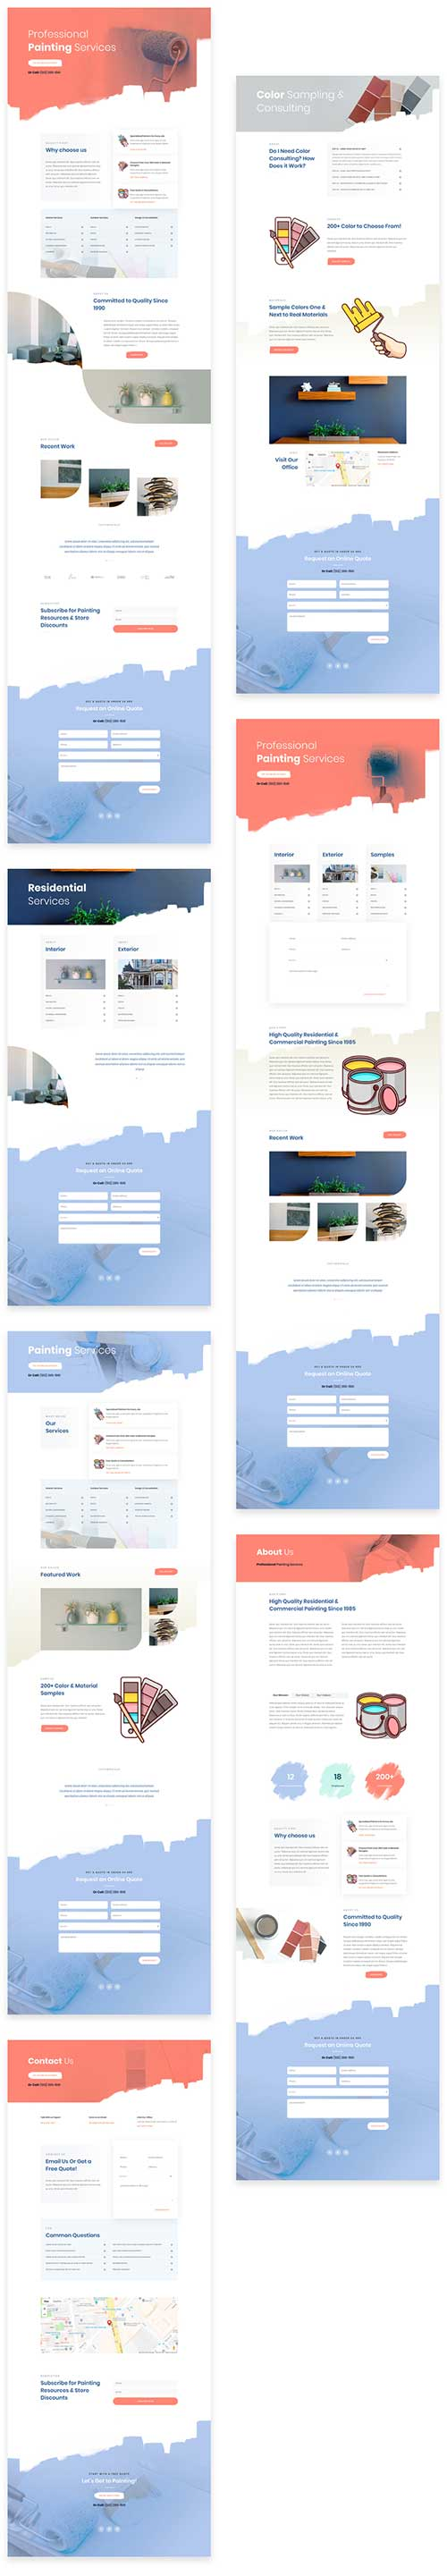 painters layout pack